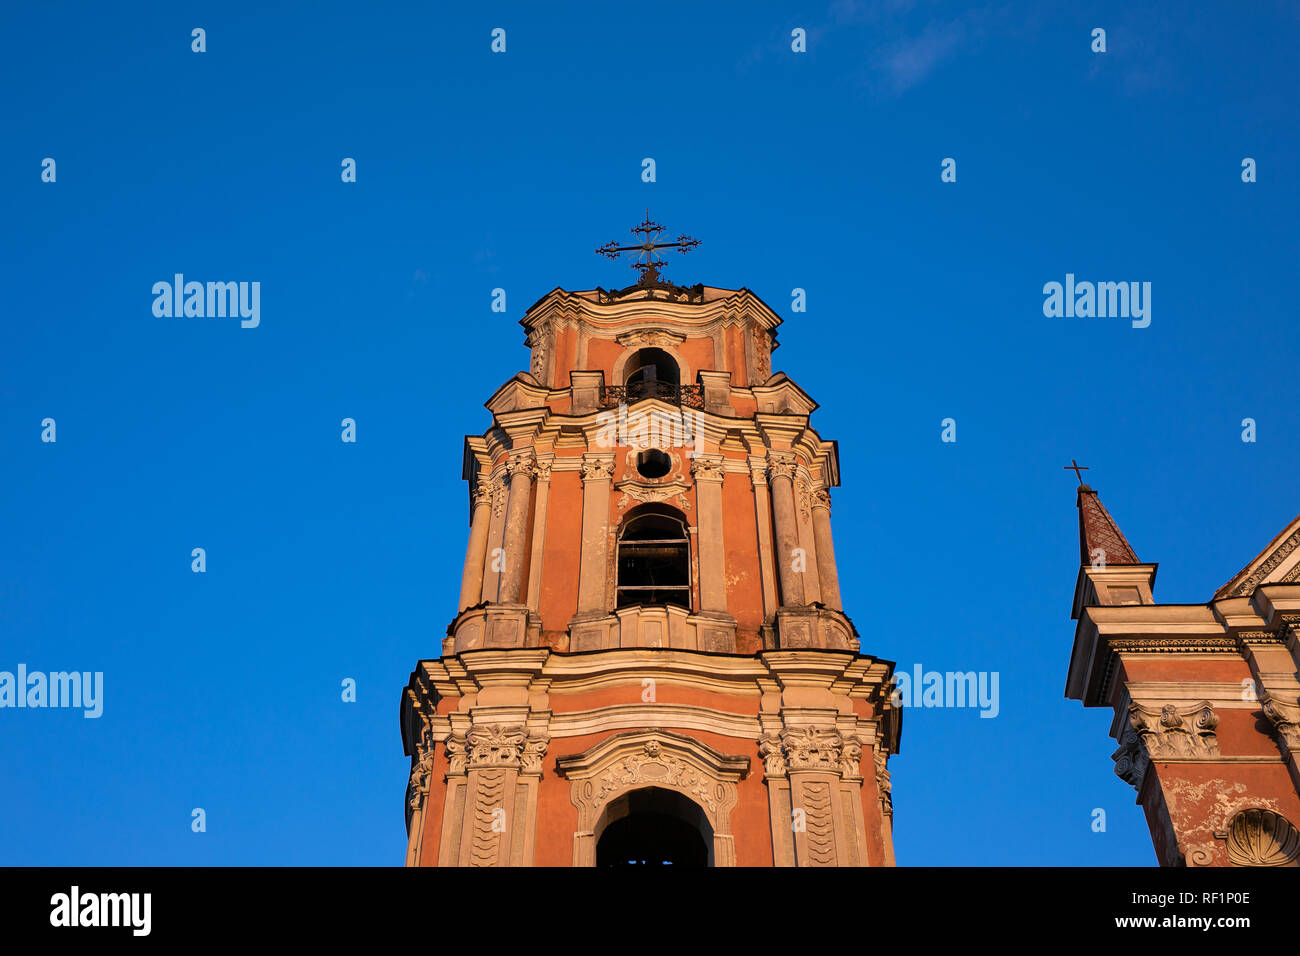 Church in Old Town at night of Vilnius, Lithuania, Baltic states. - Stock Image